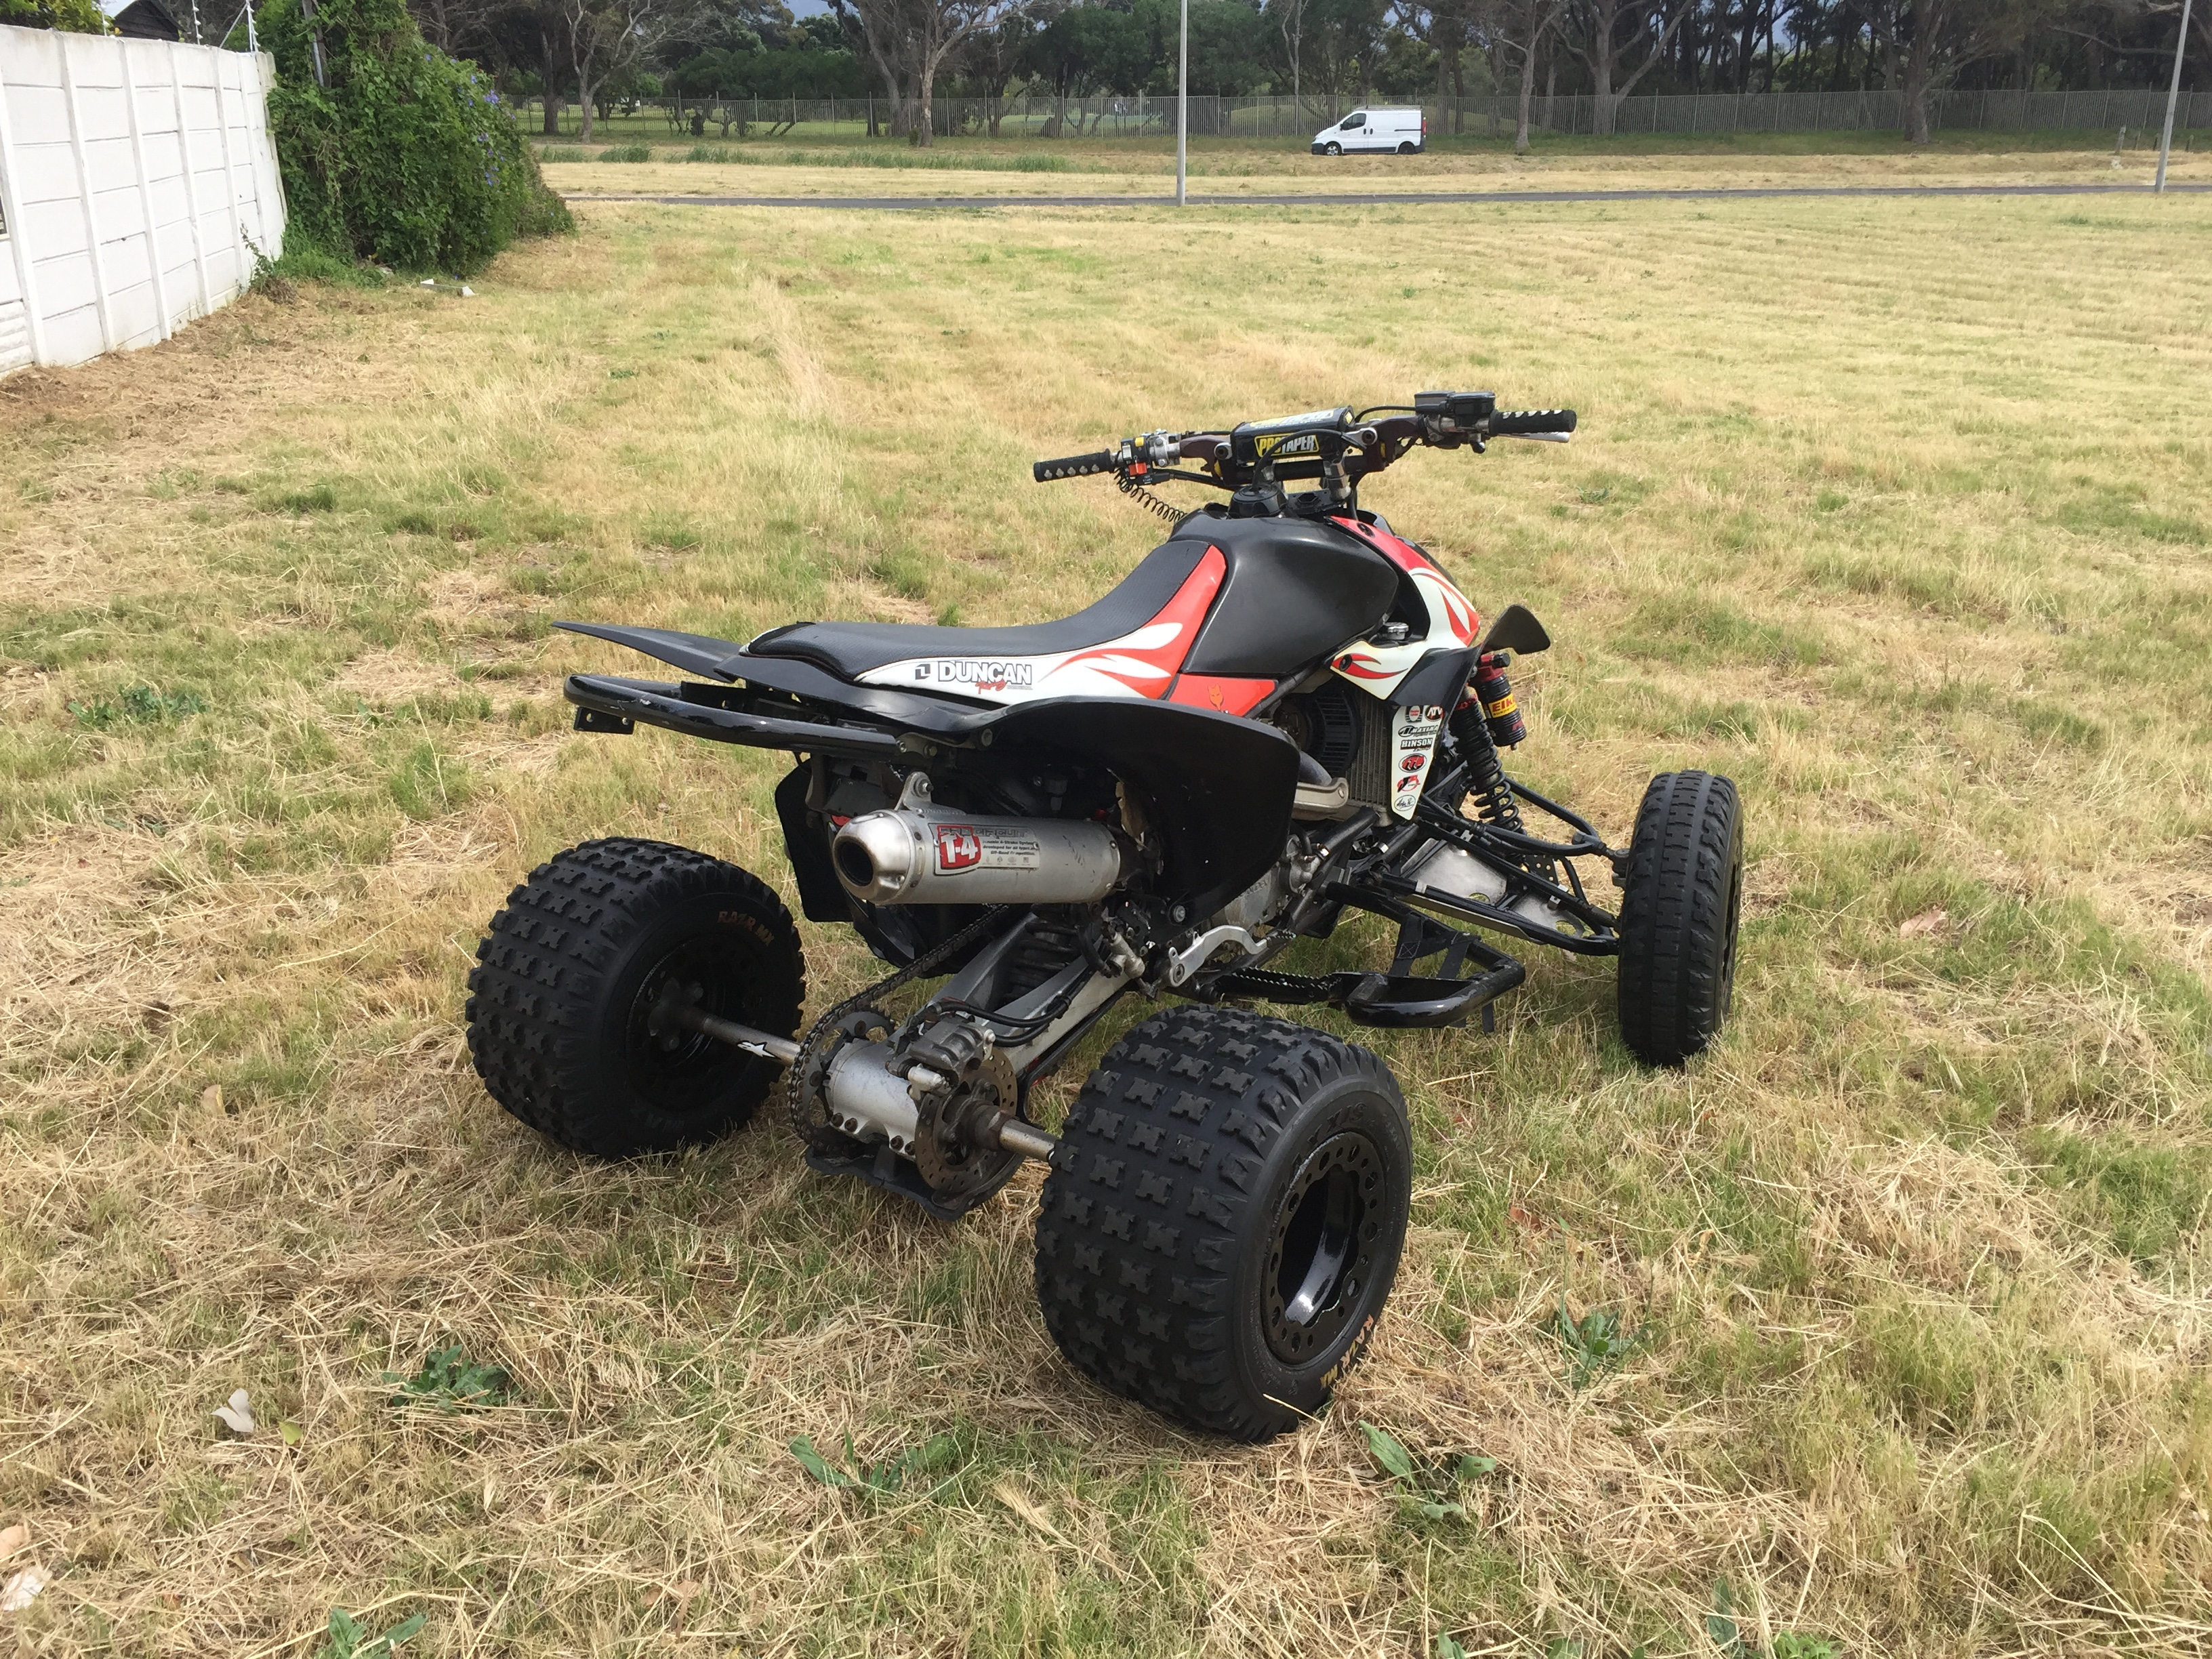 2005 Honda TRX450R Quad bike